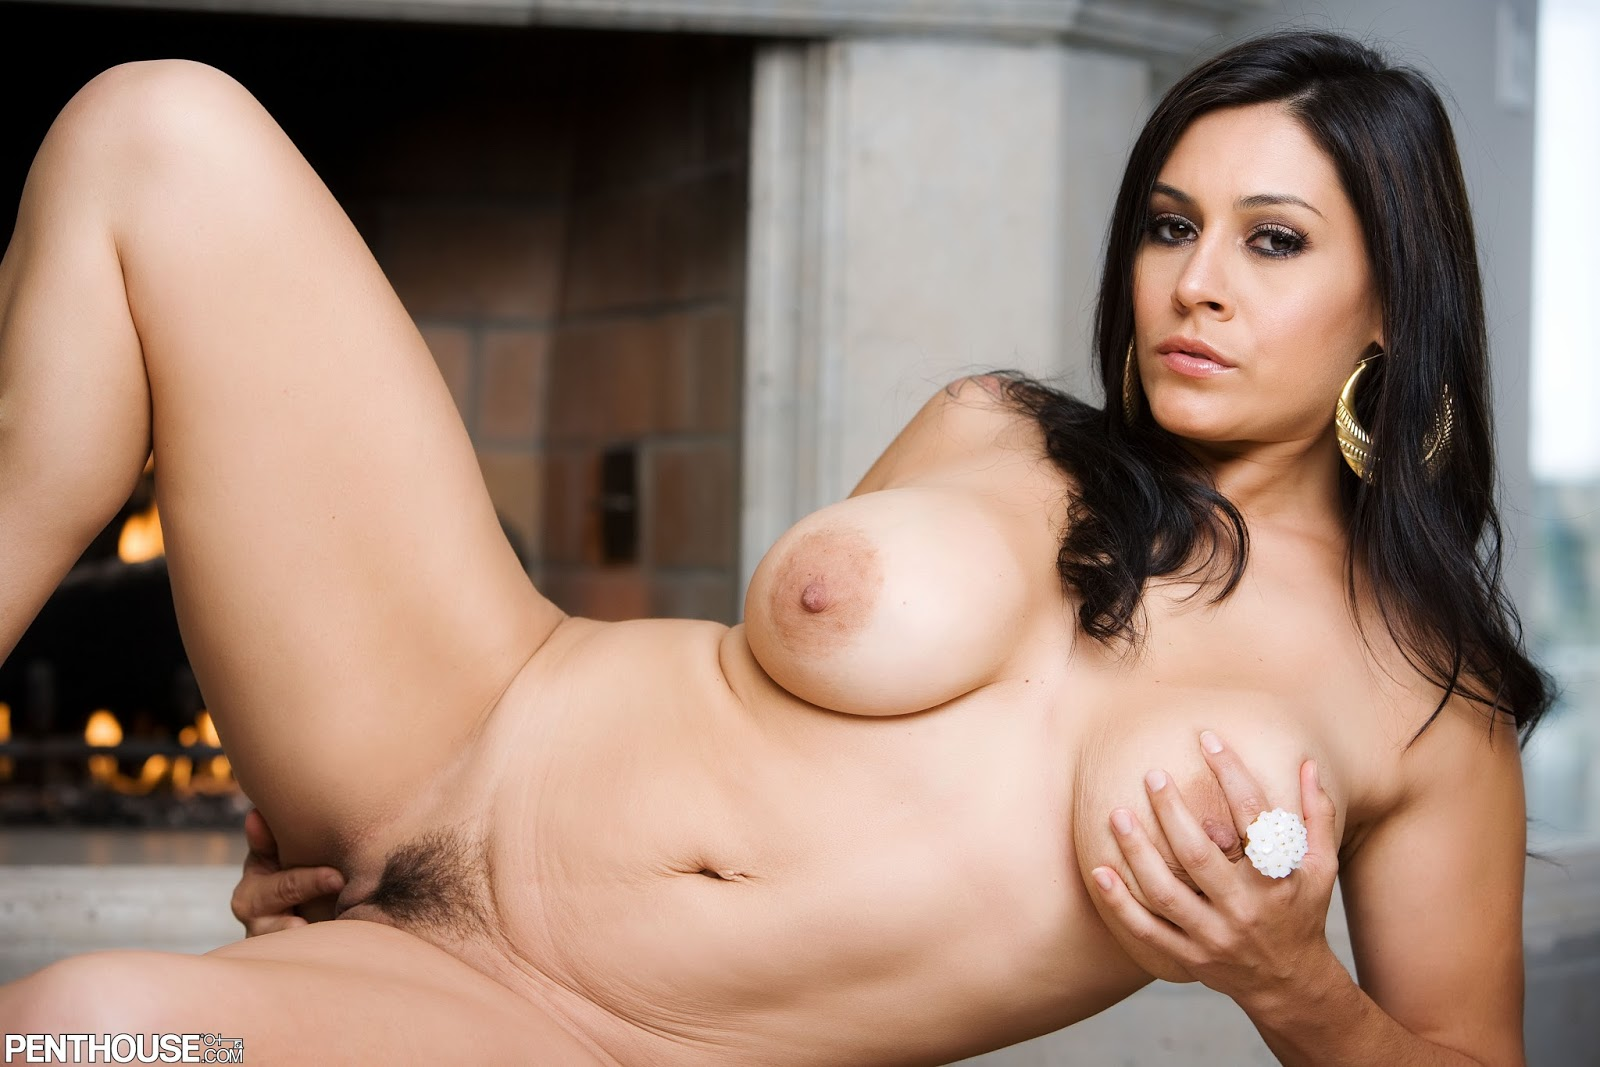 Are certainly Raylene porn star nude agree with